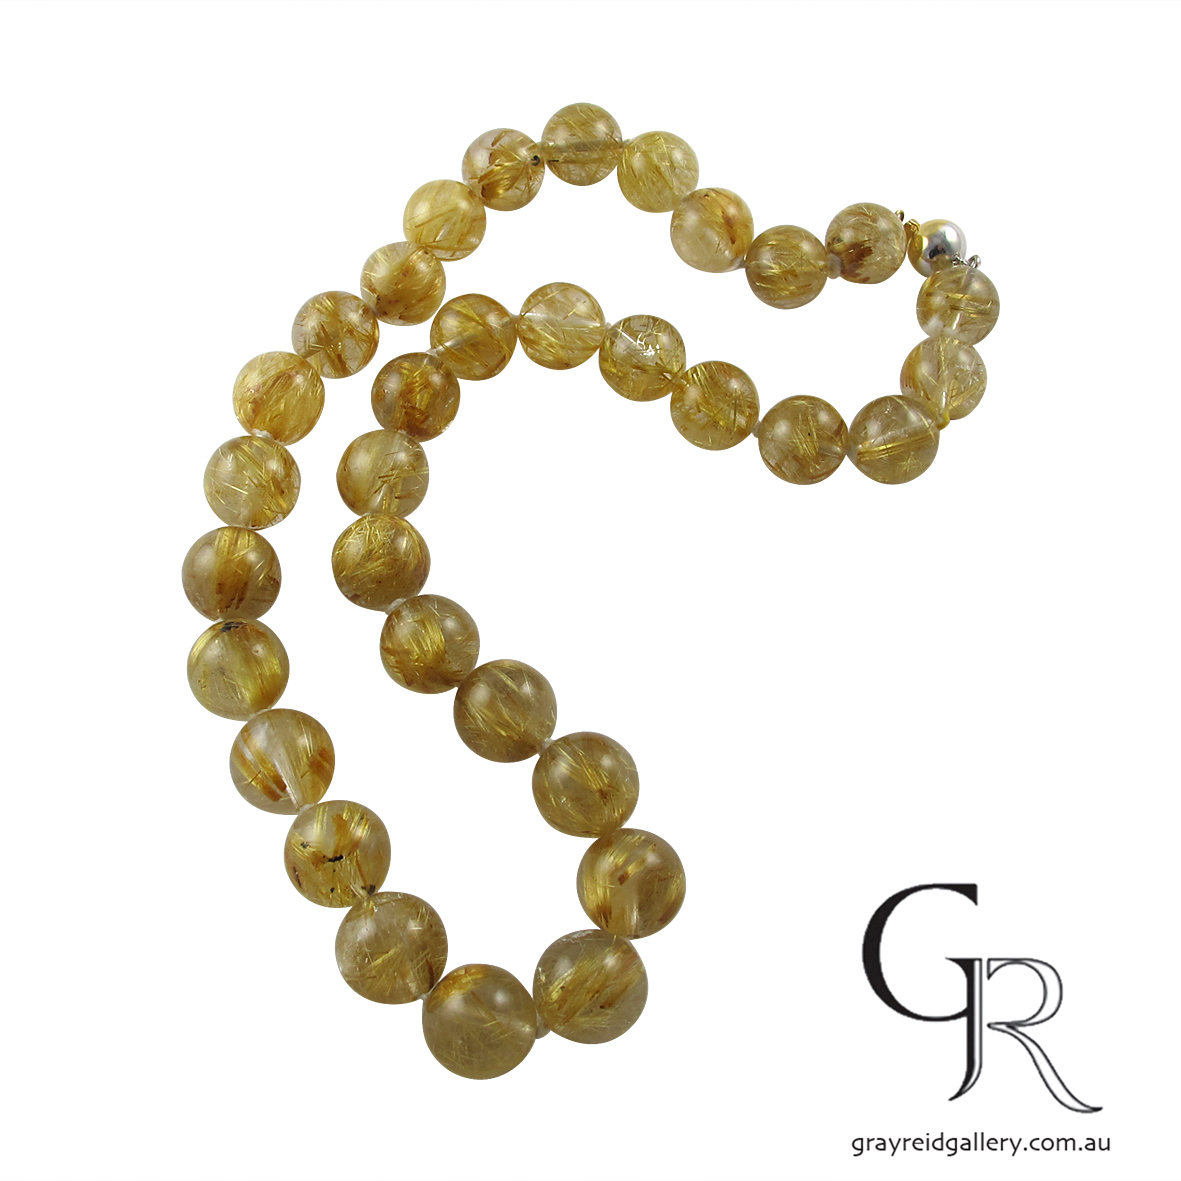 Golden Rutile Quarts Beads